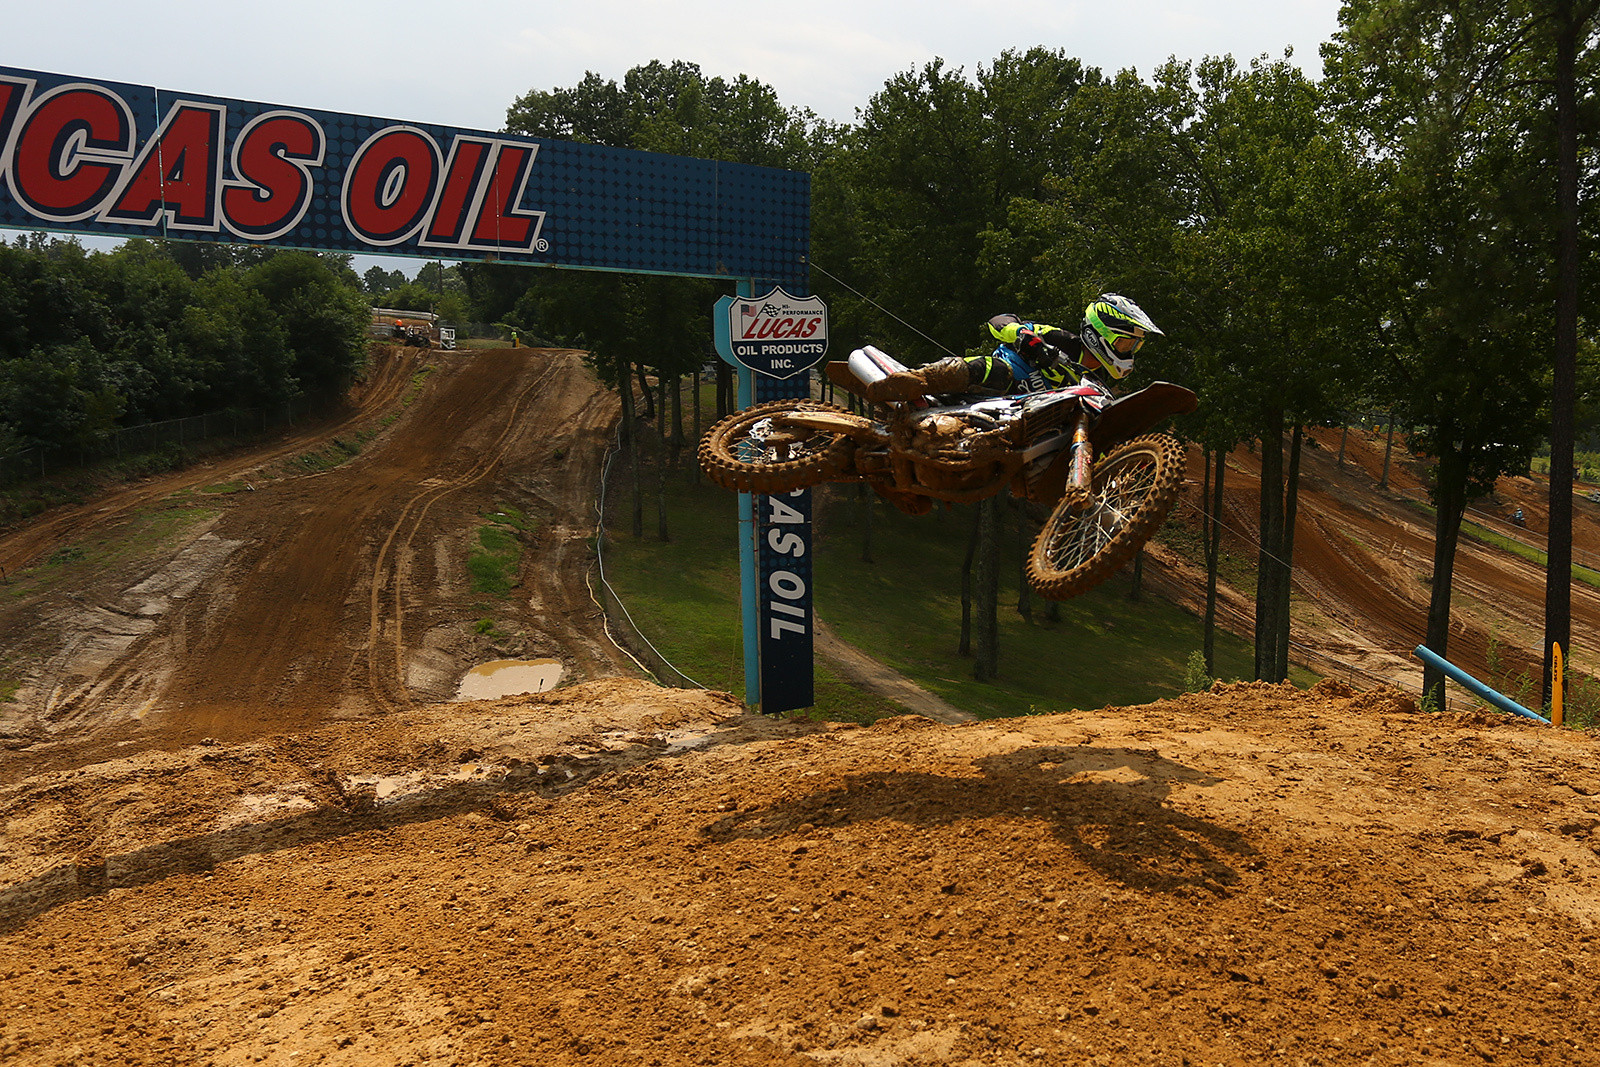 The Henry Hill section at Budds Creek got a little modification this year. Instead of being a big peaked jump, there was actually a small pre-jump to get the riders over the top. Tony Archer demonstrates.